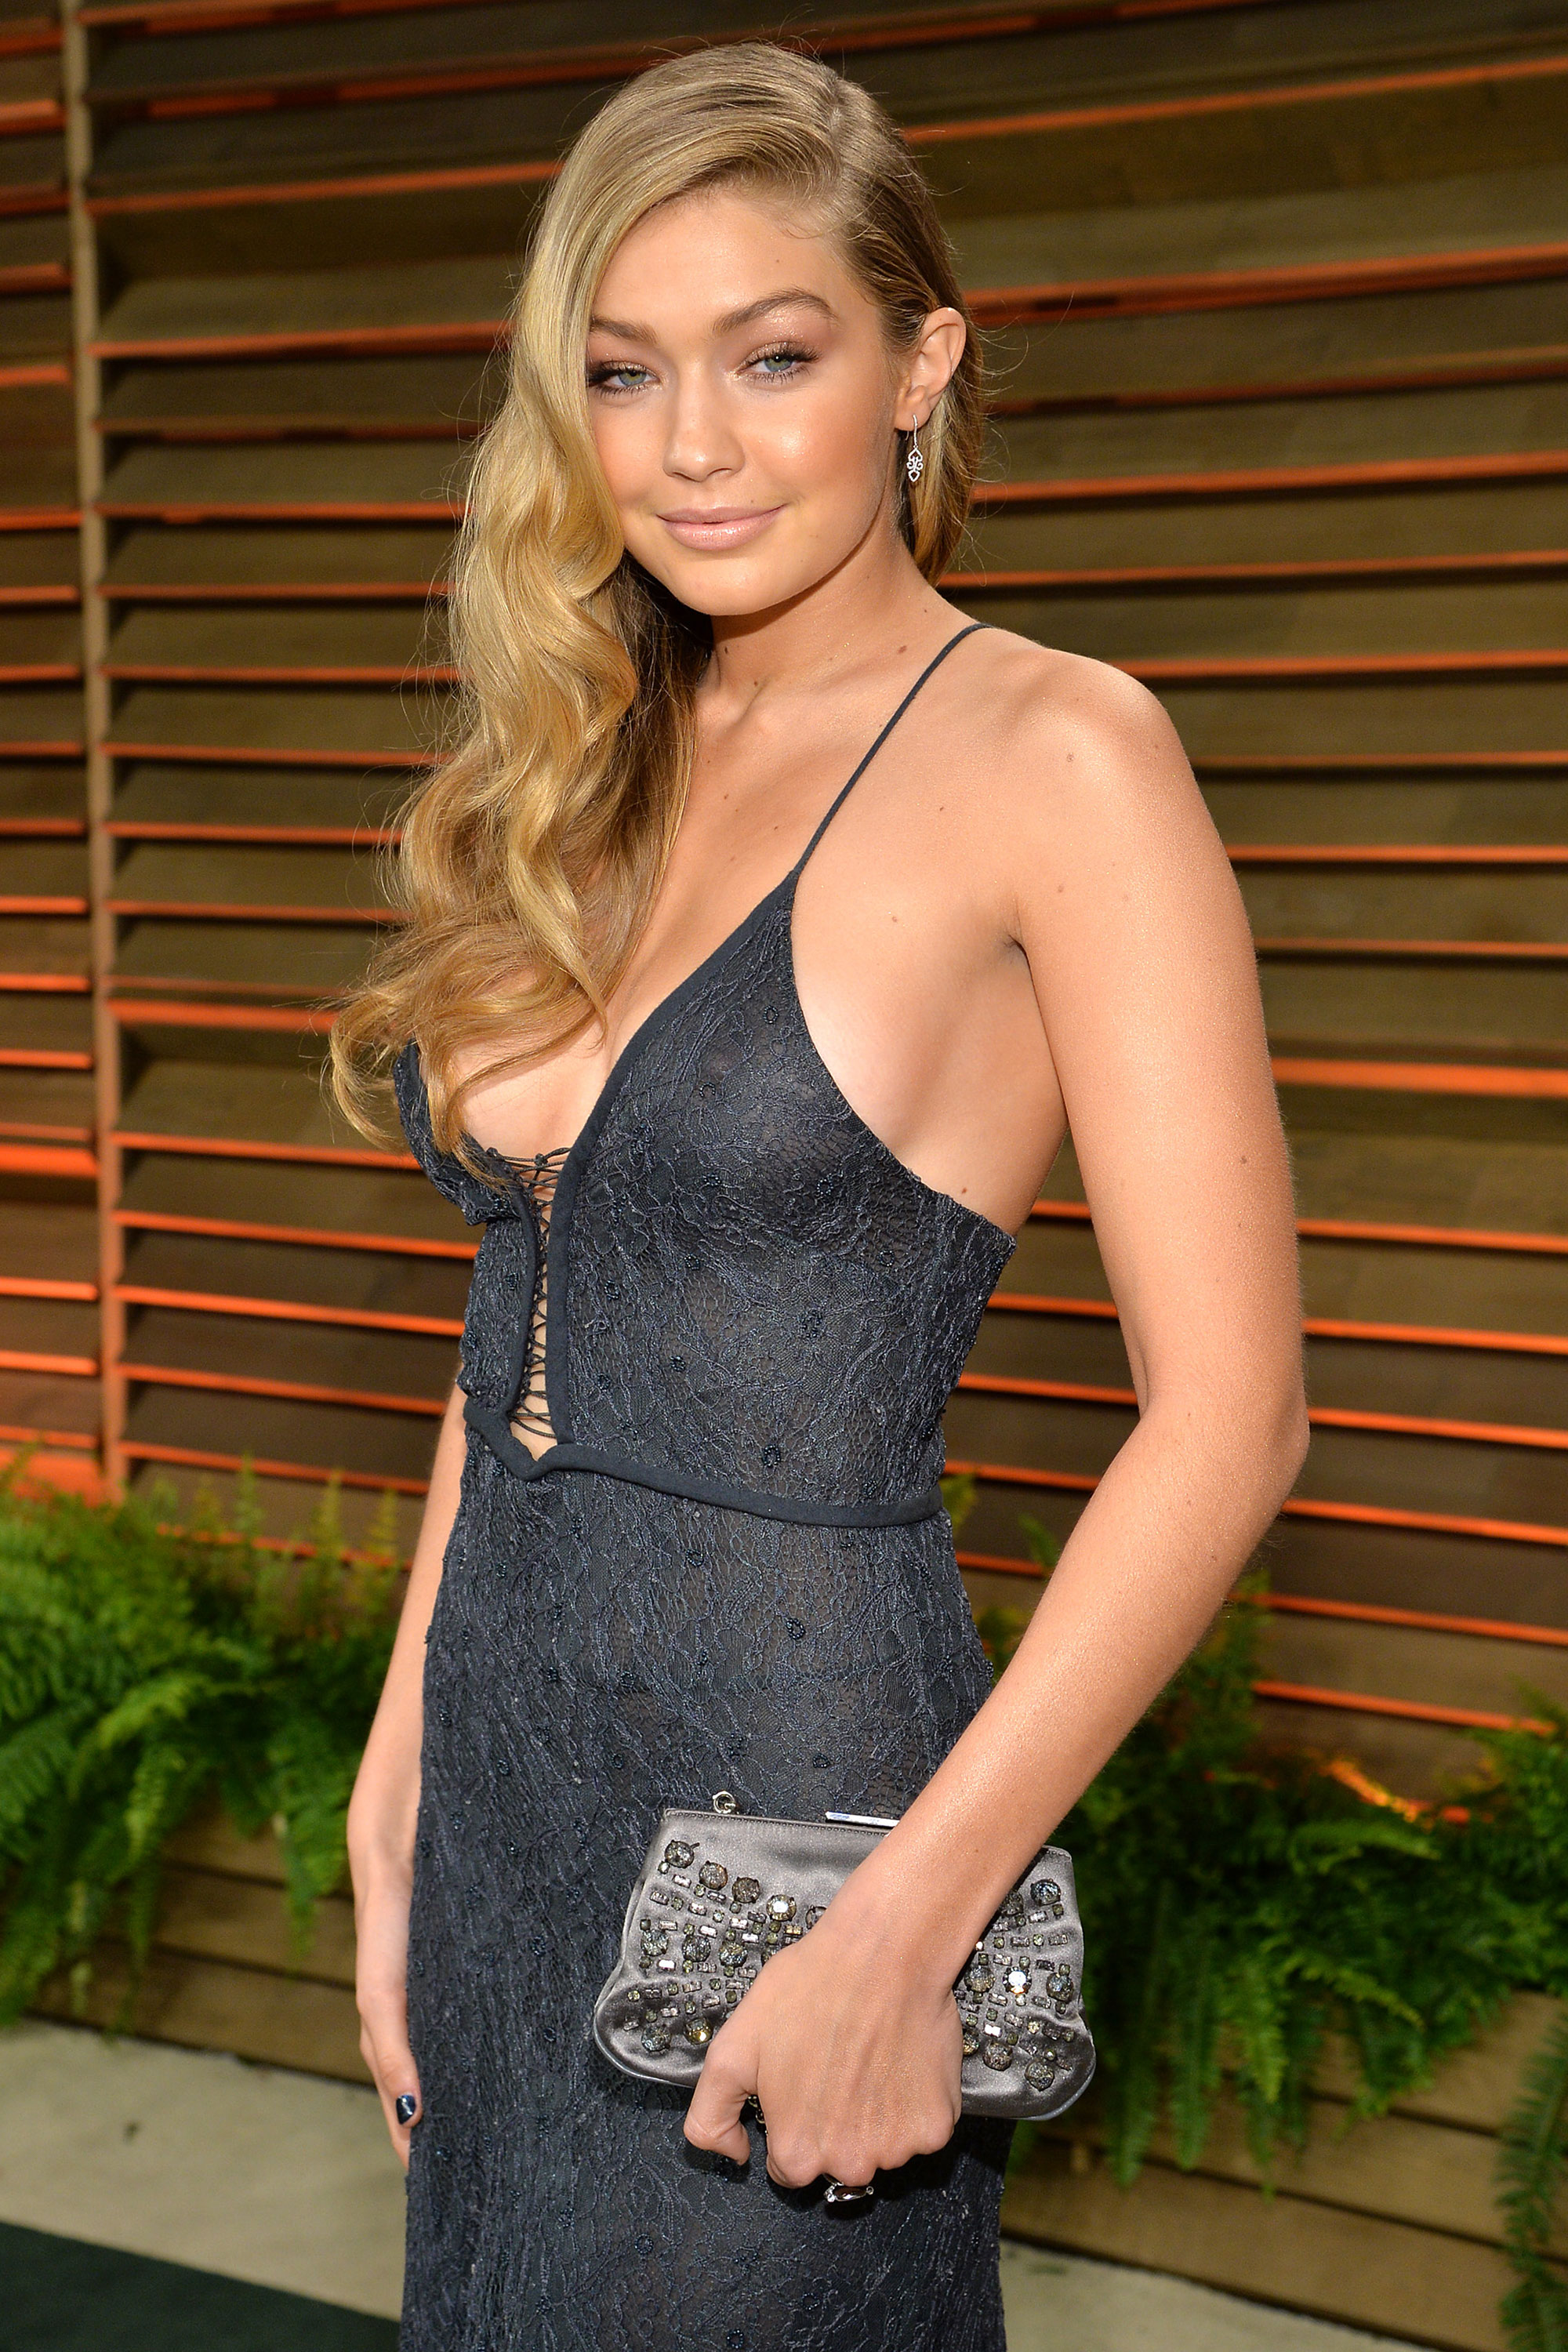 Gigi Hadid Interview Daughter Of Yolanda Foster From